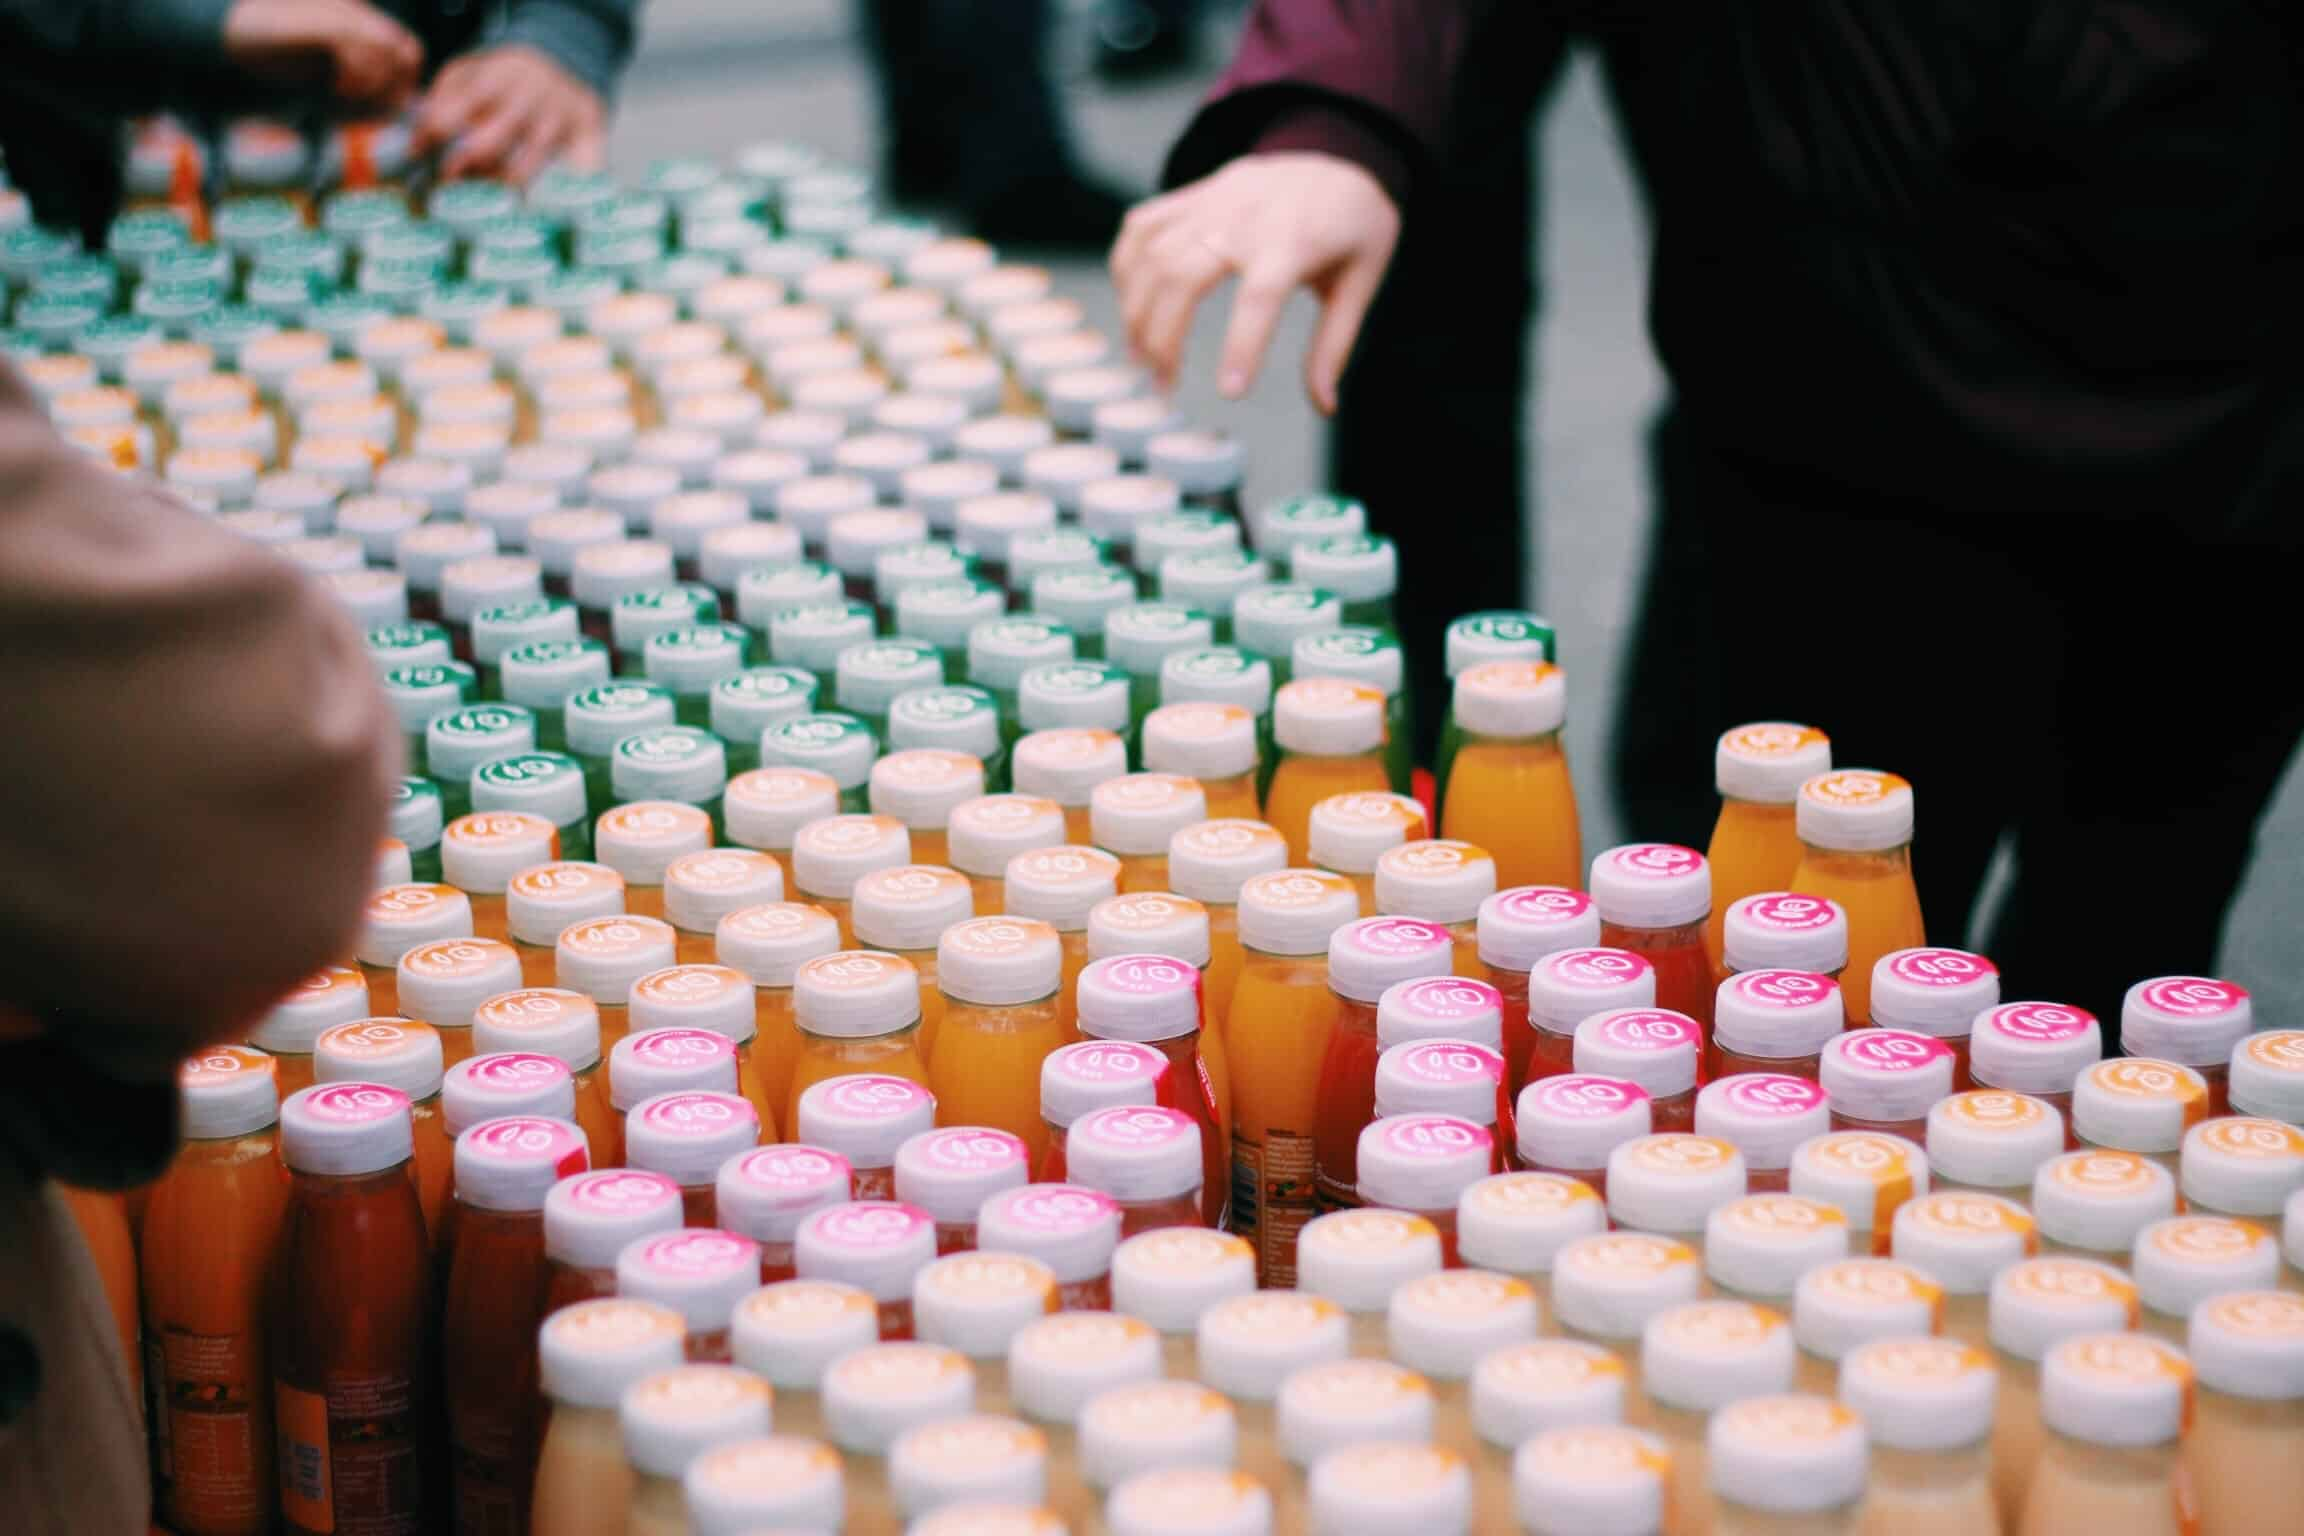 Image of Innocent juice bottles